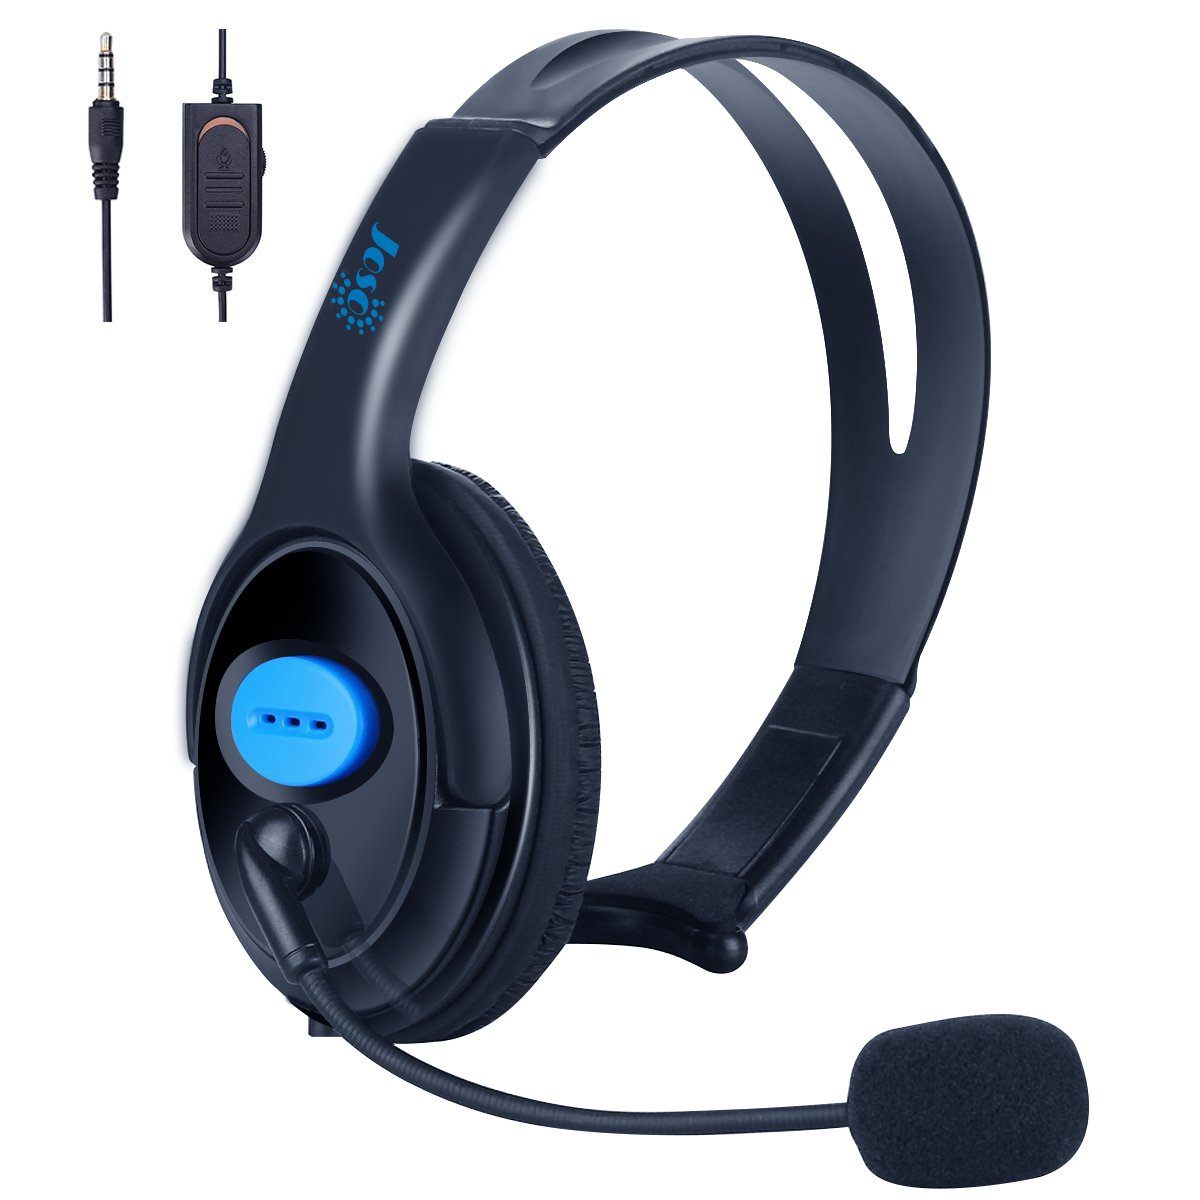 PS4 Xbox One Unilateral Headset, Joso 3.5mm Wired Gaming Headphone Online Chat One Ear Headset Headphone with Mic for PS4, PS4 Pro, PS4 Slim, Xbox One, Xbox One S, Xbox One X, Nintendo Switch